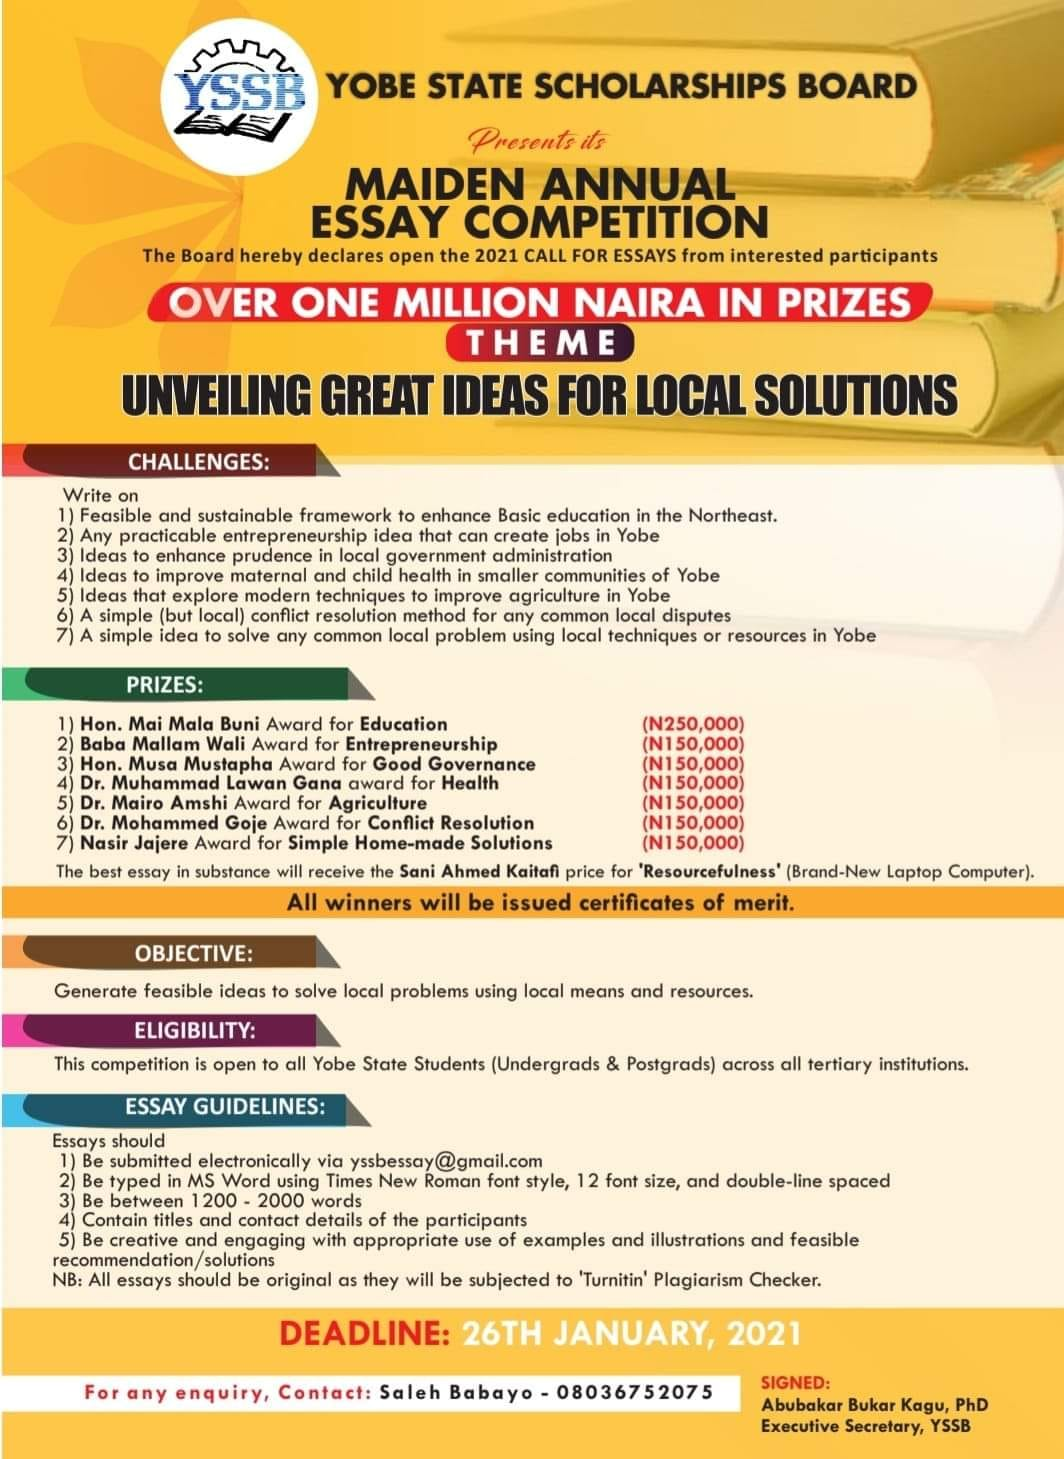 YSSB Annual Essay Competition 2021 | Over 1 Million in Prizes